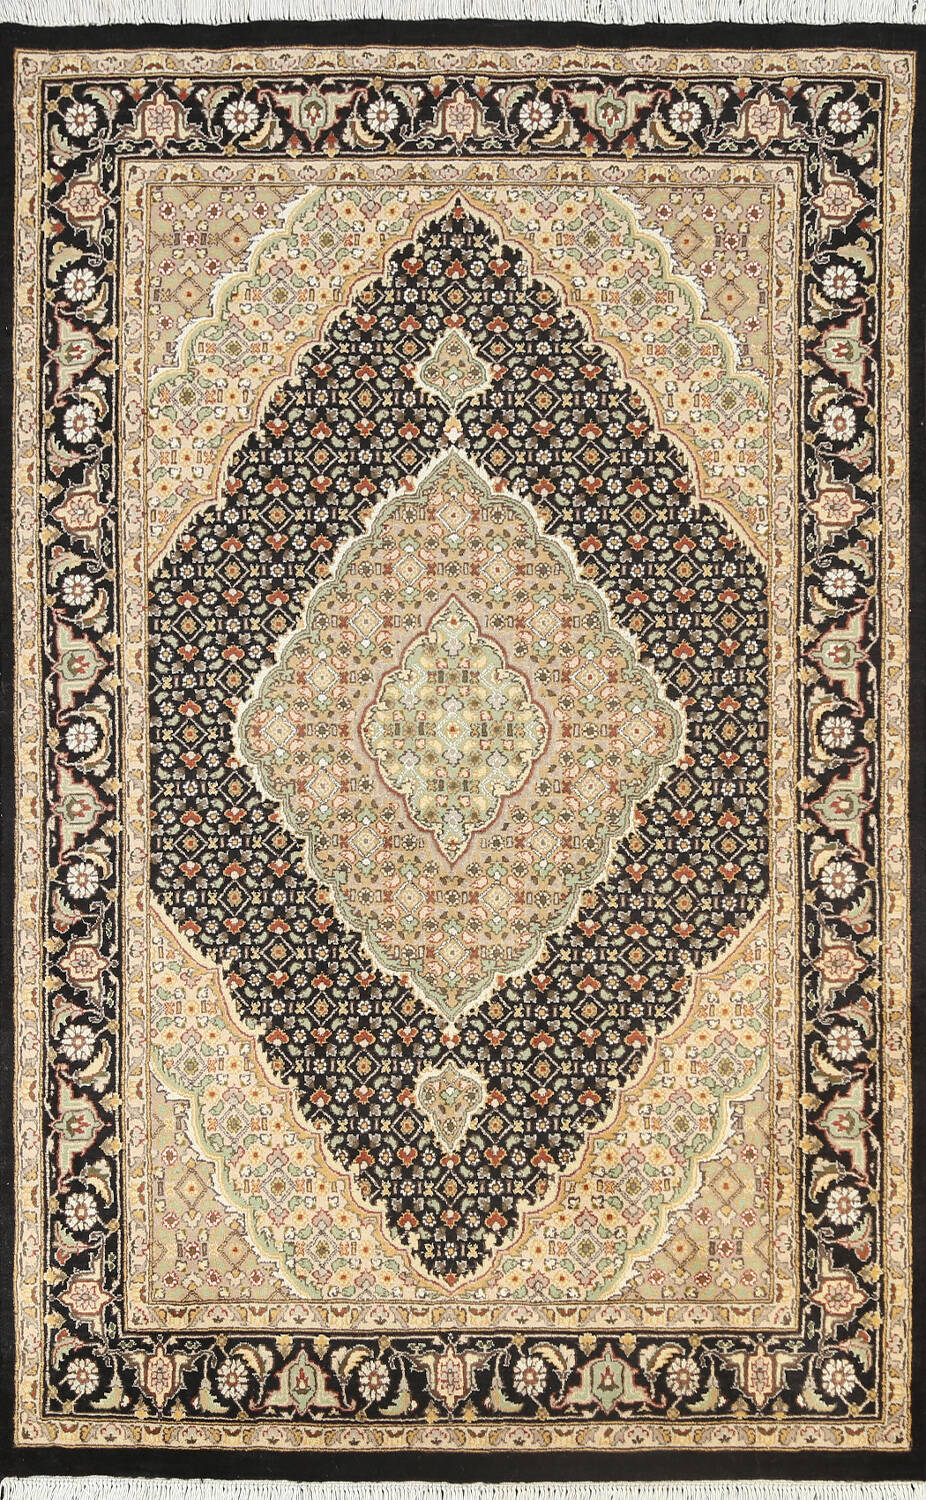 100% Vegetable Dye Tabriz Mahi Oriental Area Rug 4x6 image 1